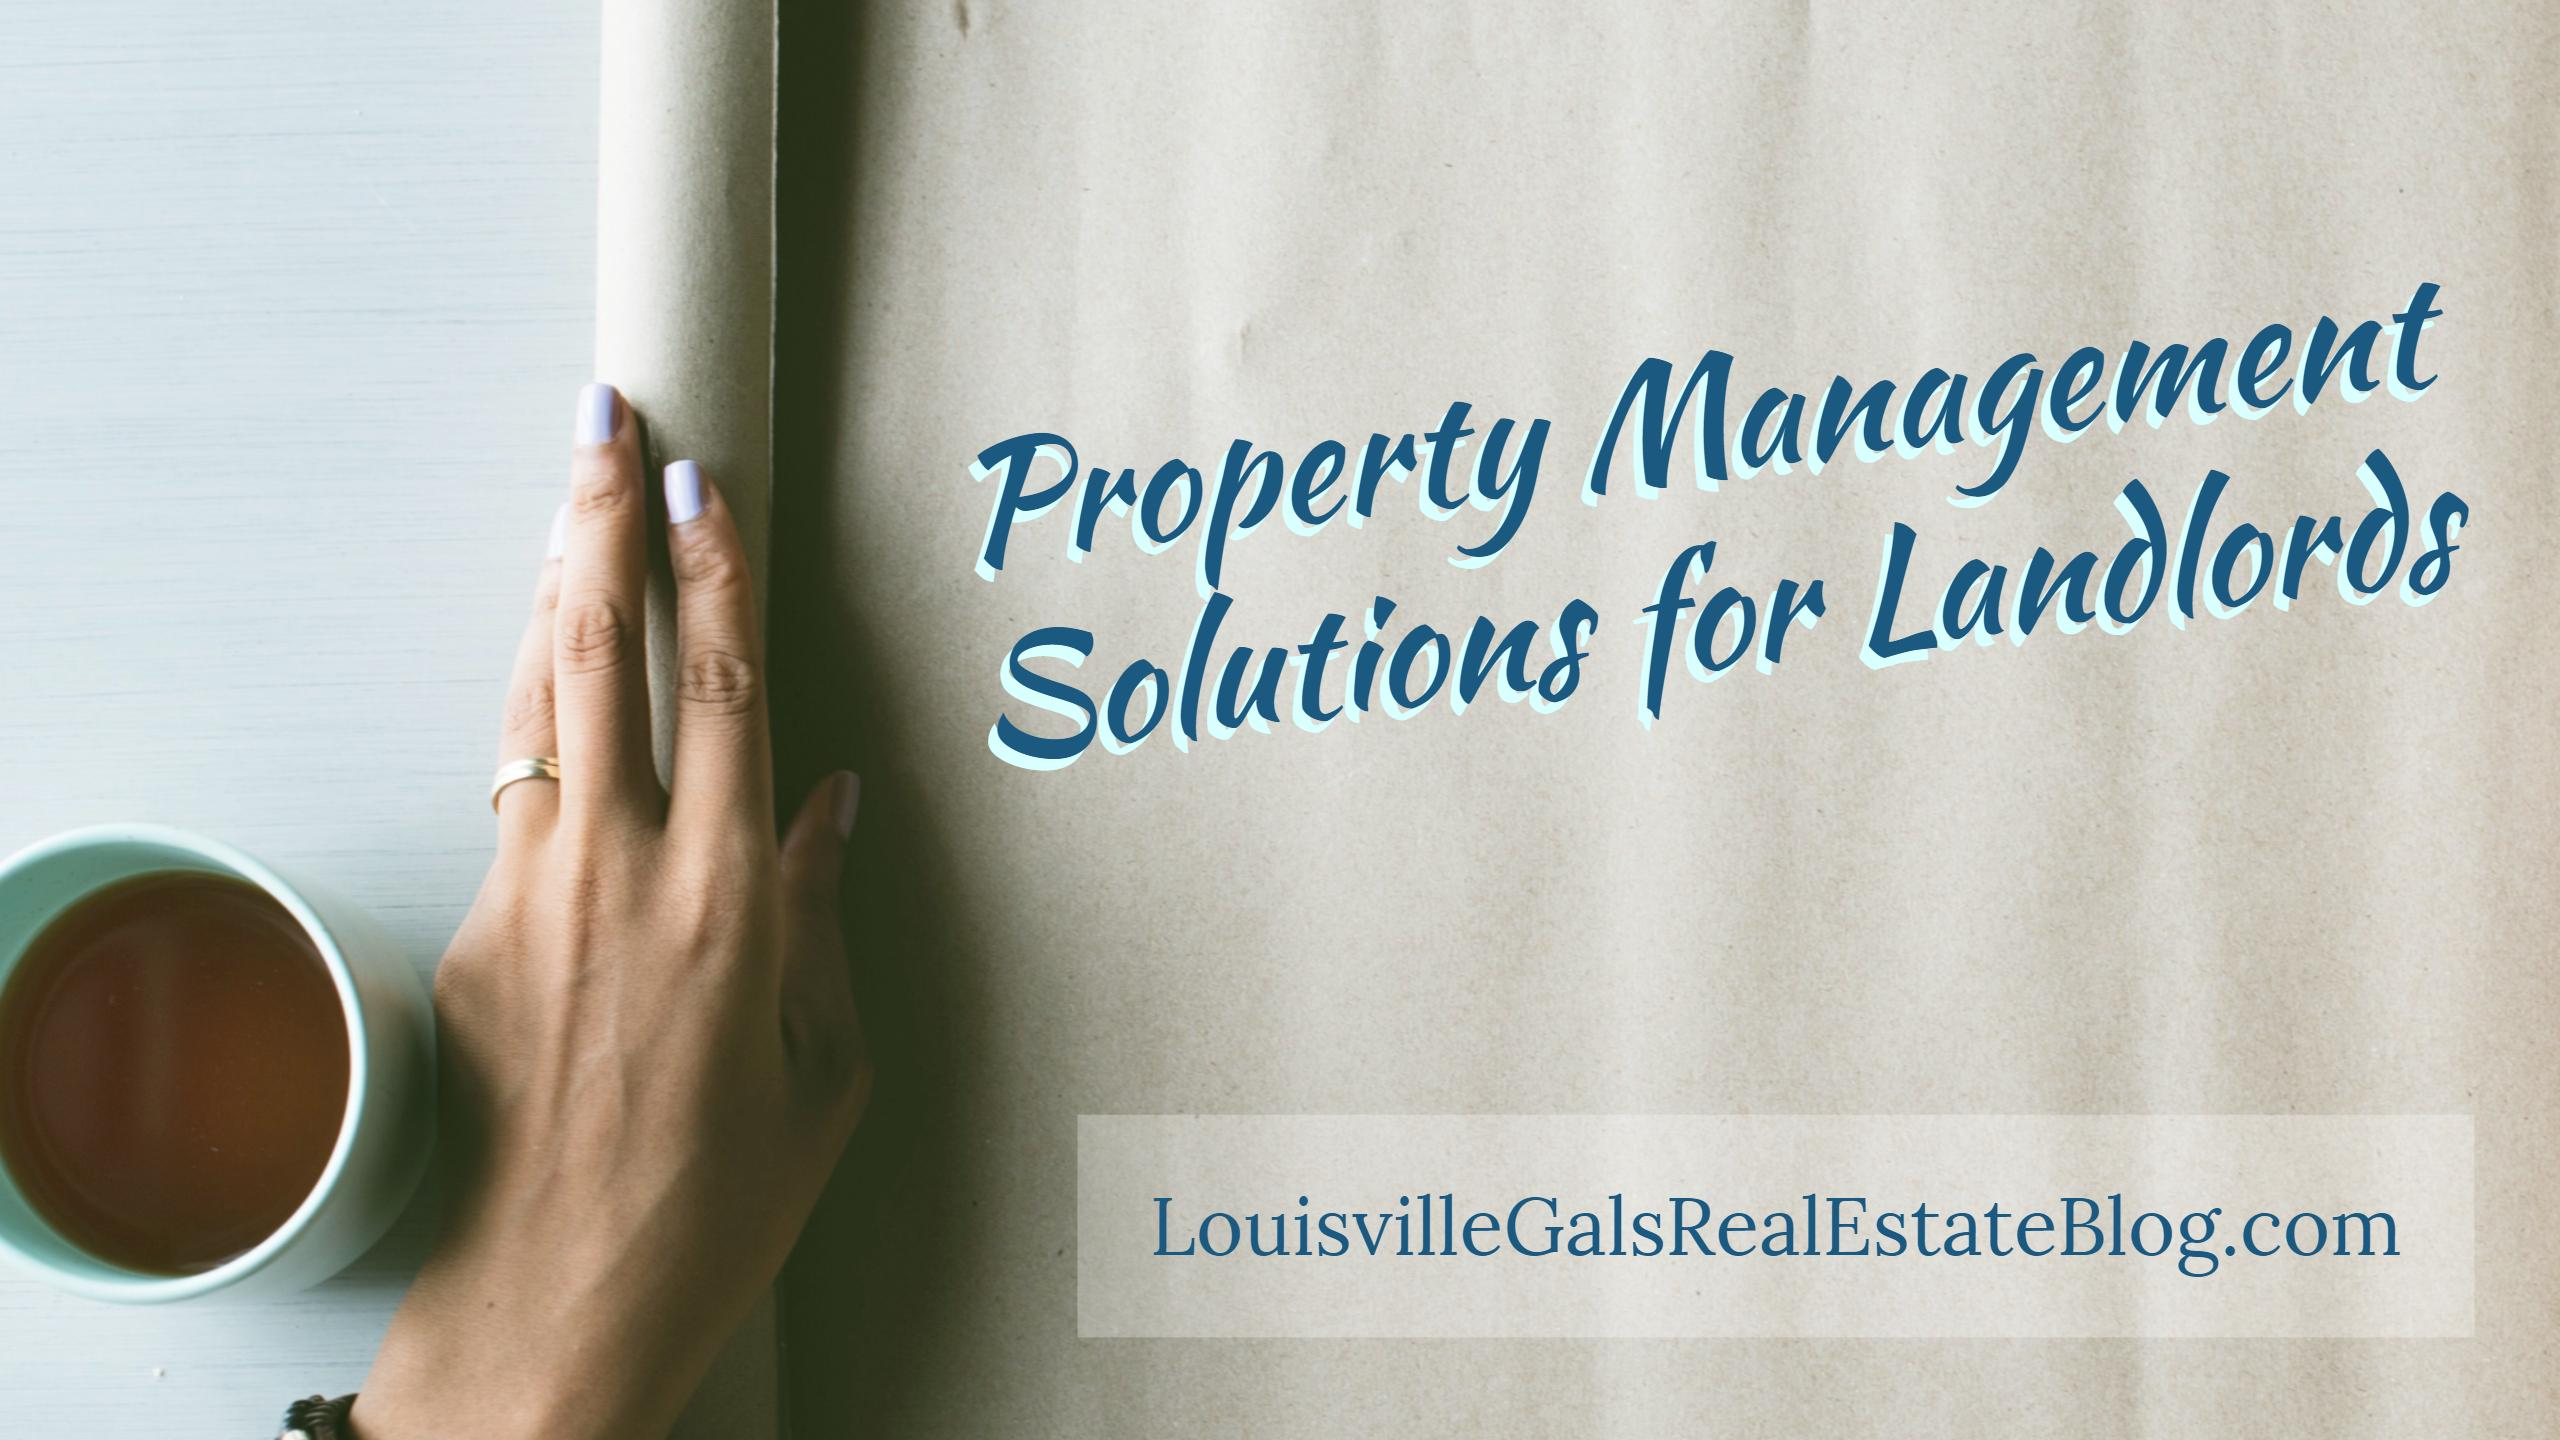 Property Management Solutions for Landlords